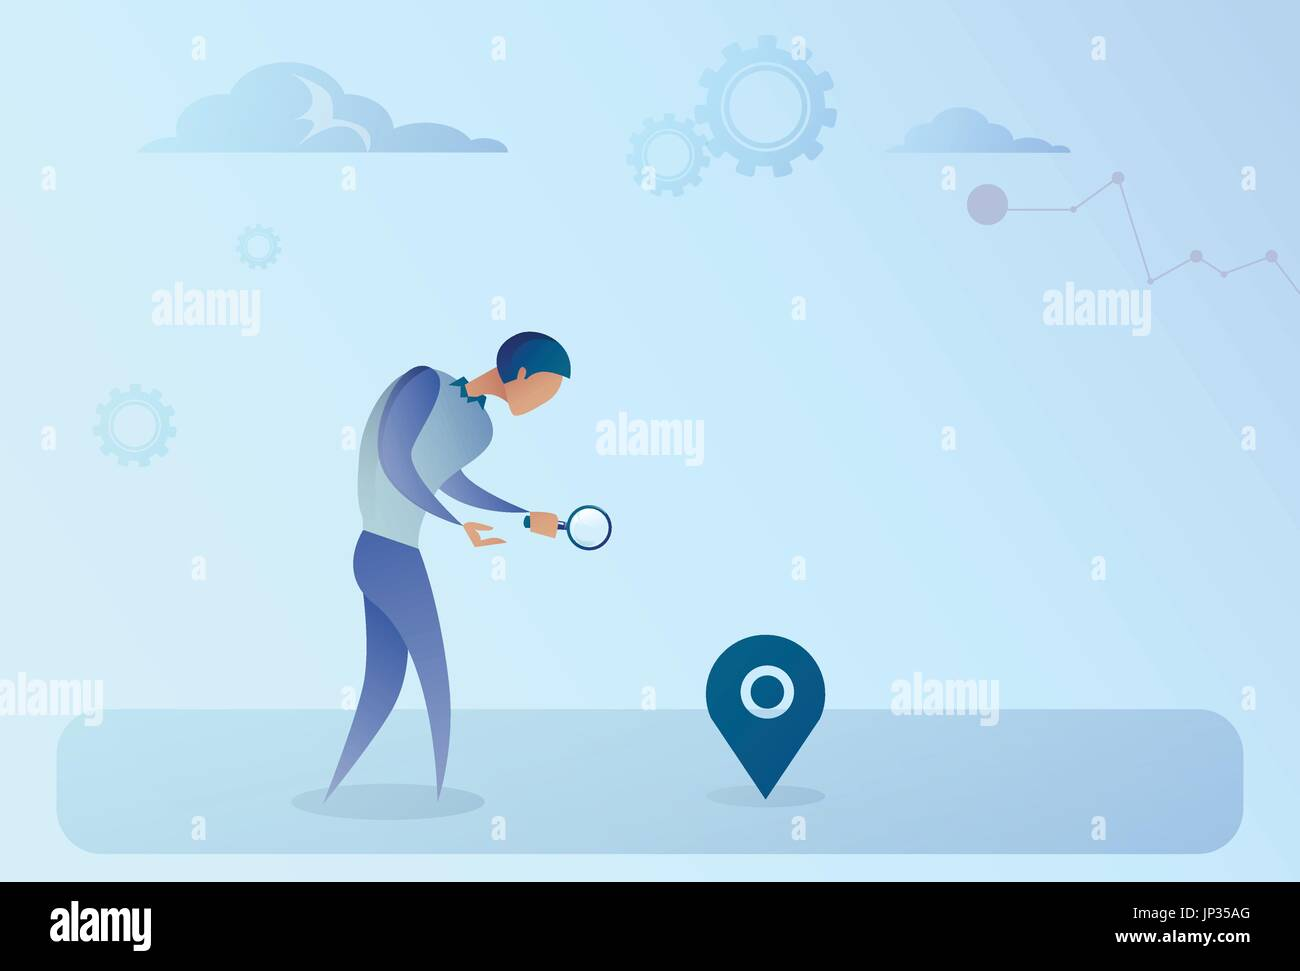 Business Man Searching For Destination On Digital City Map Gps Navigation Concept - Stock Vector